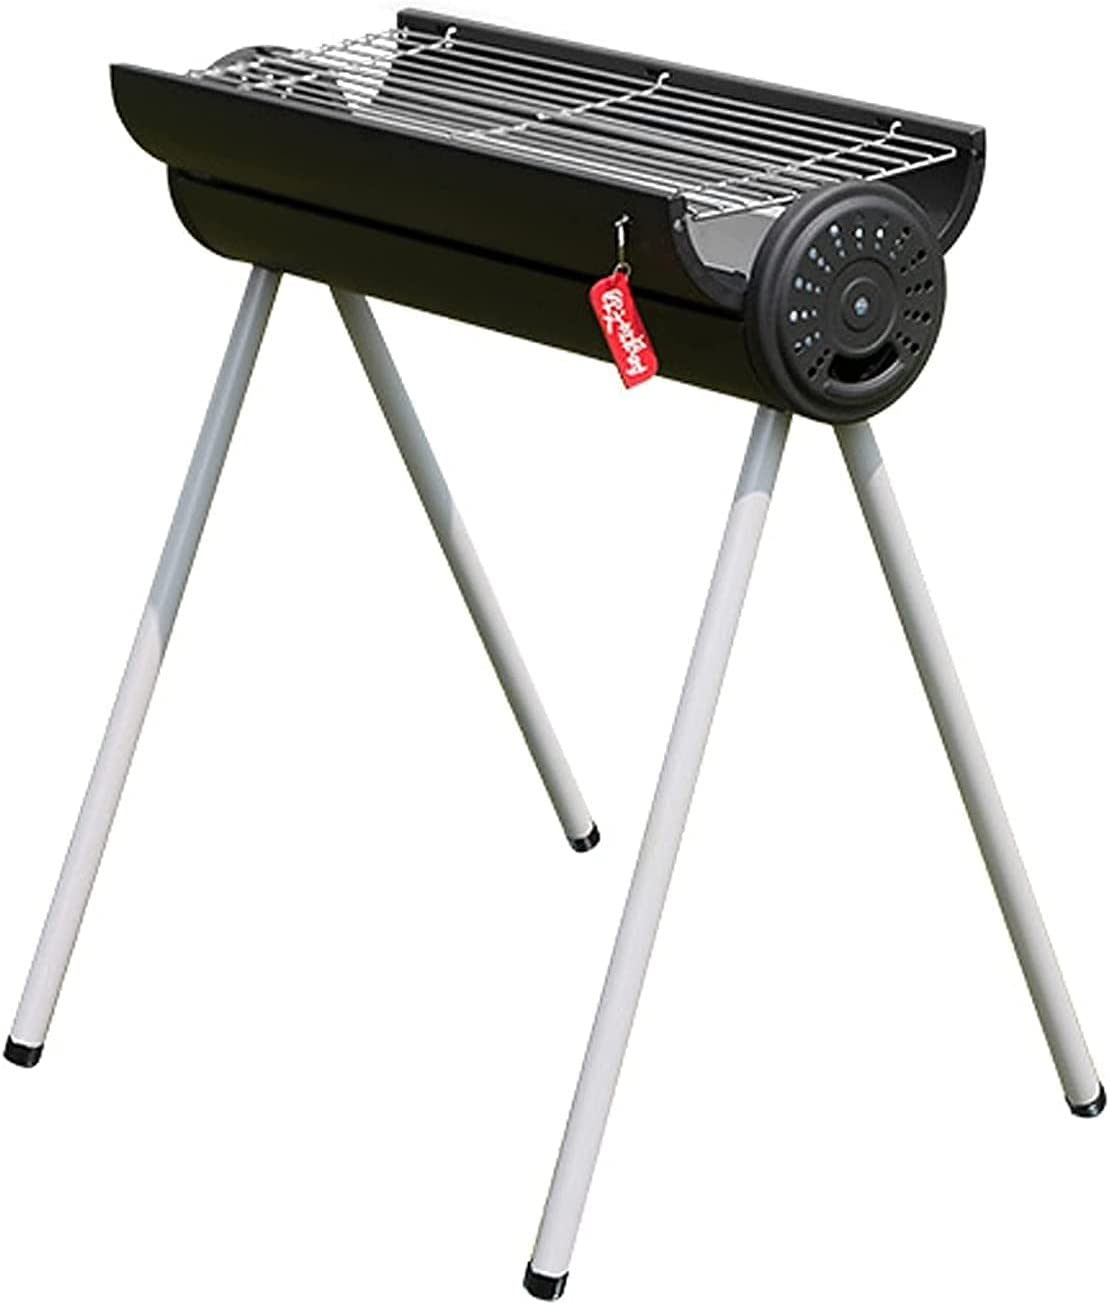 AACXRCR Barbecue tool Colorado Springs Mall set Bar Lightweight BBQ Long-awaited Charcoal